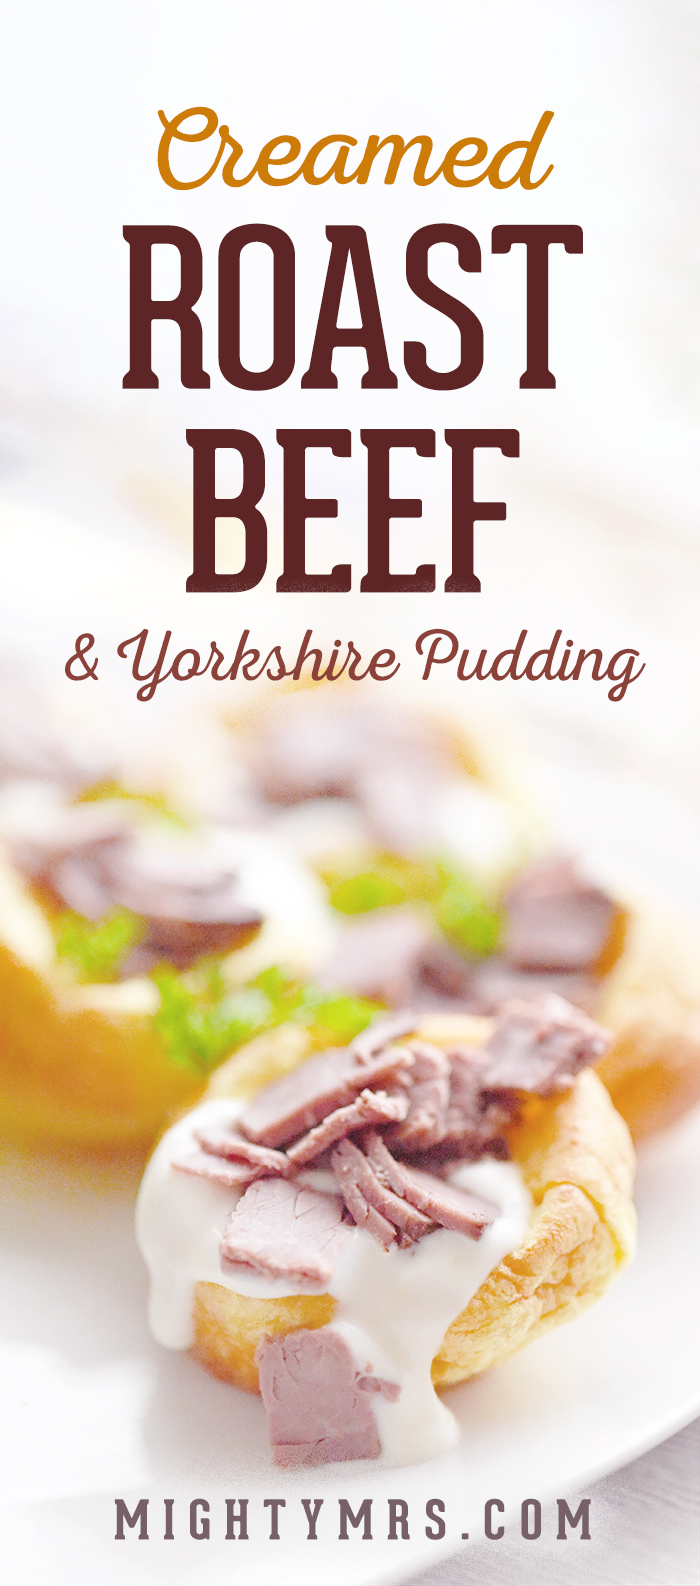 Creamed Roast Beef with Yorkshire Pudding